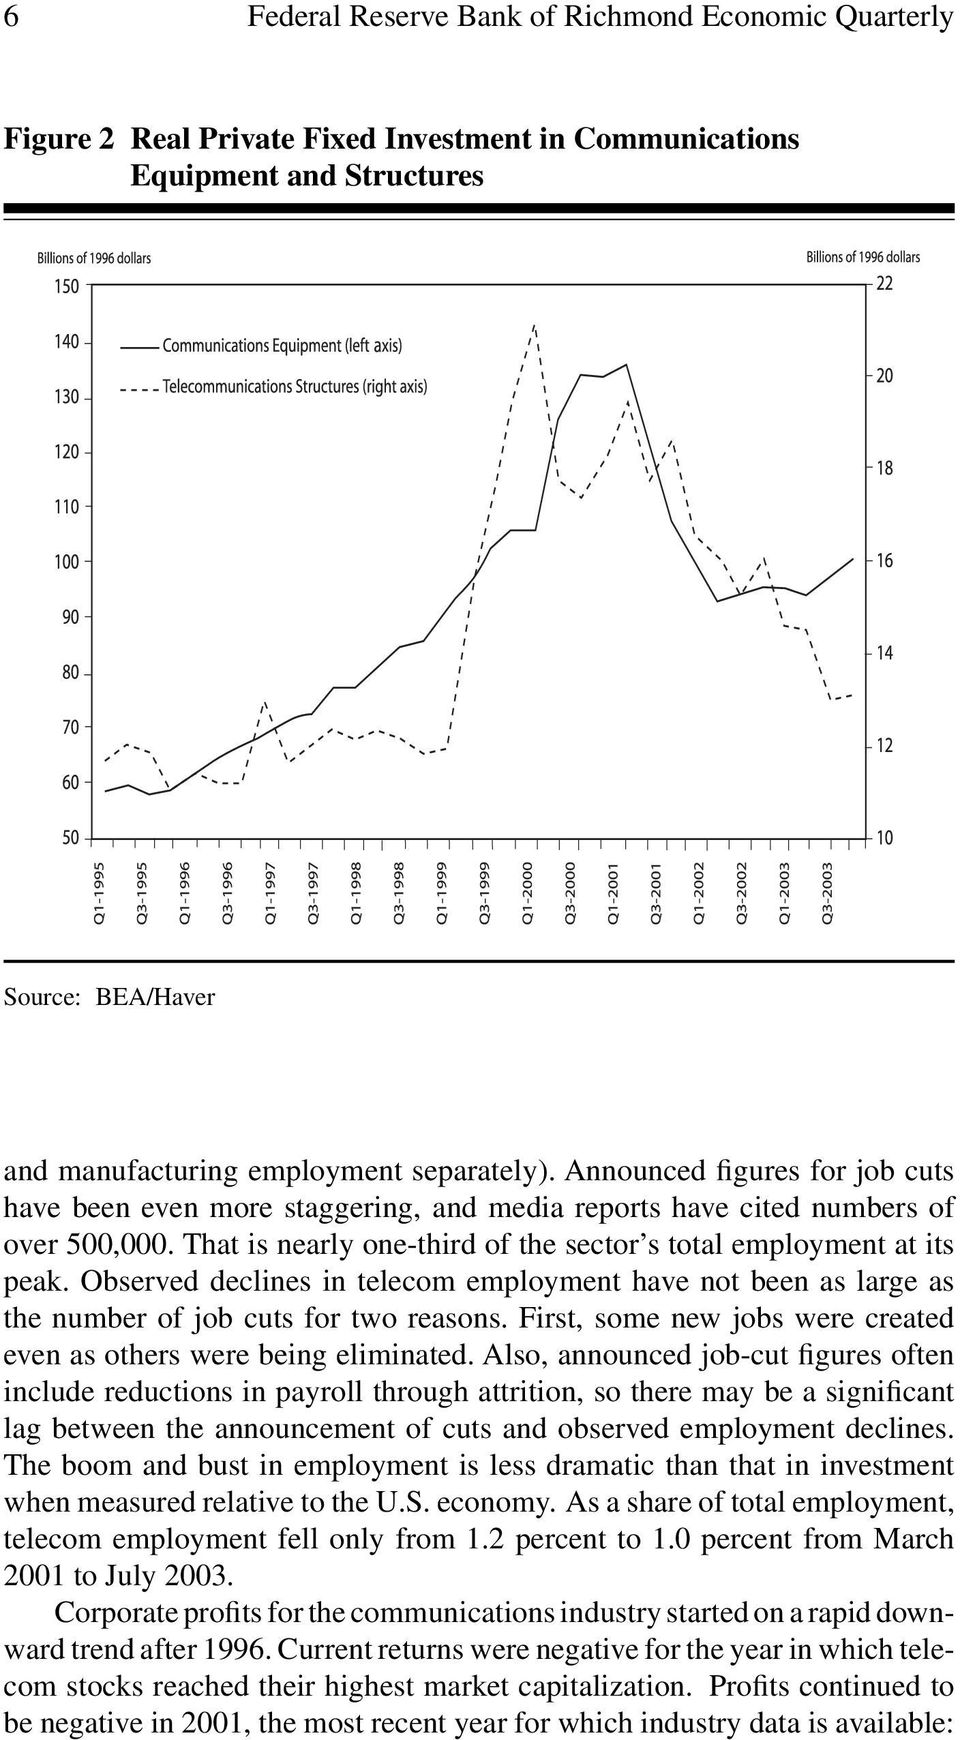 Observed declines in telecom employment have not been as large as the number of job cuts for two reasons. First, some new jobs were created even as others were being eliminated.